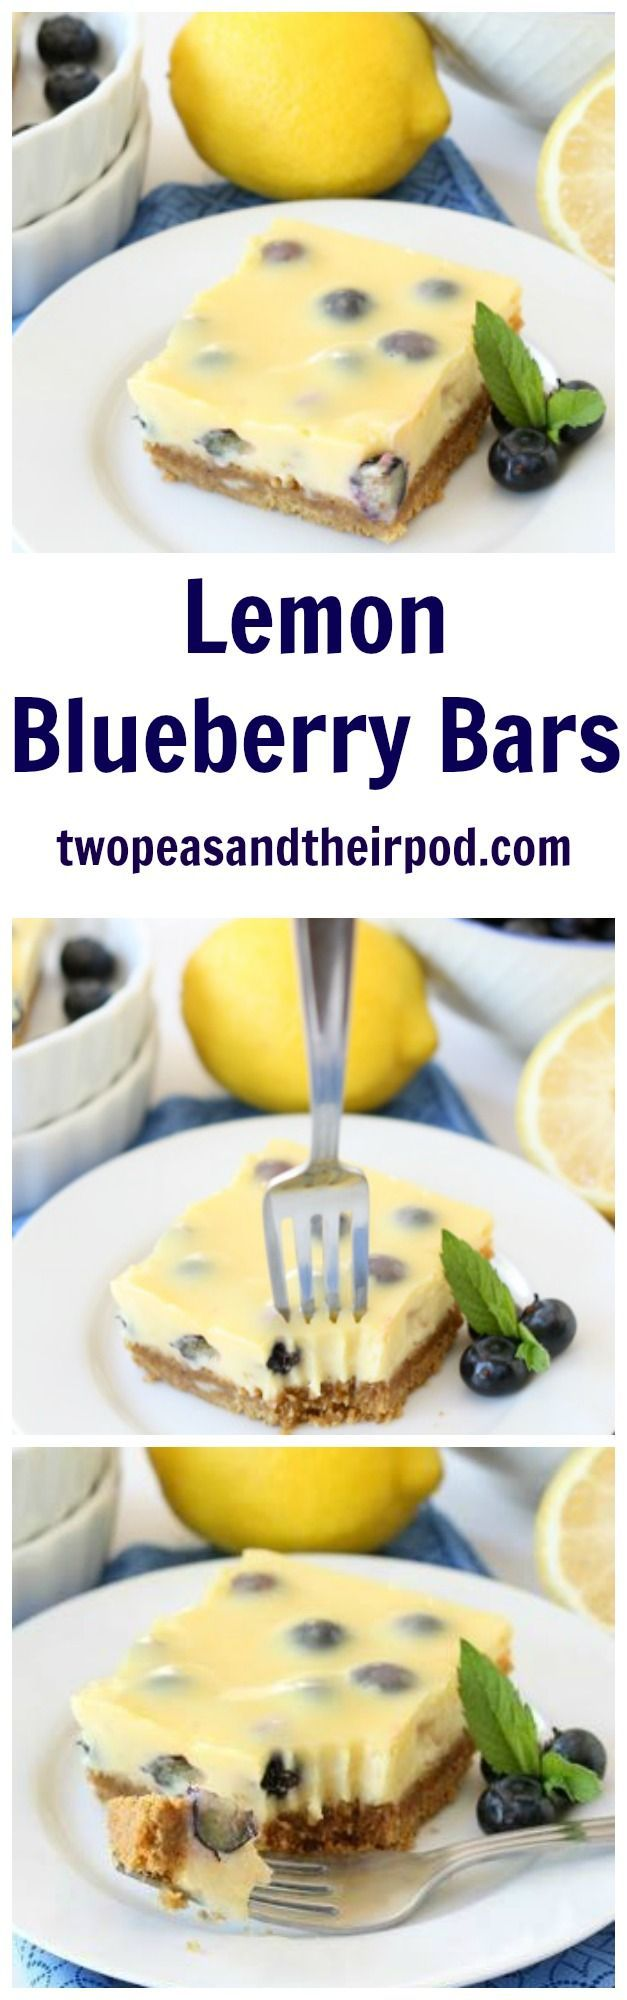 Lemon Blueberry Bars Recipe These easy lemon bars with a graham cracker crust are bursting with juicy blueberries! They are a family favorite dessert!